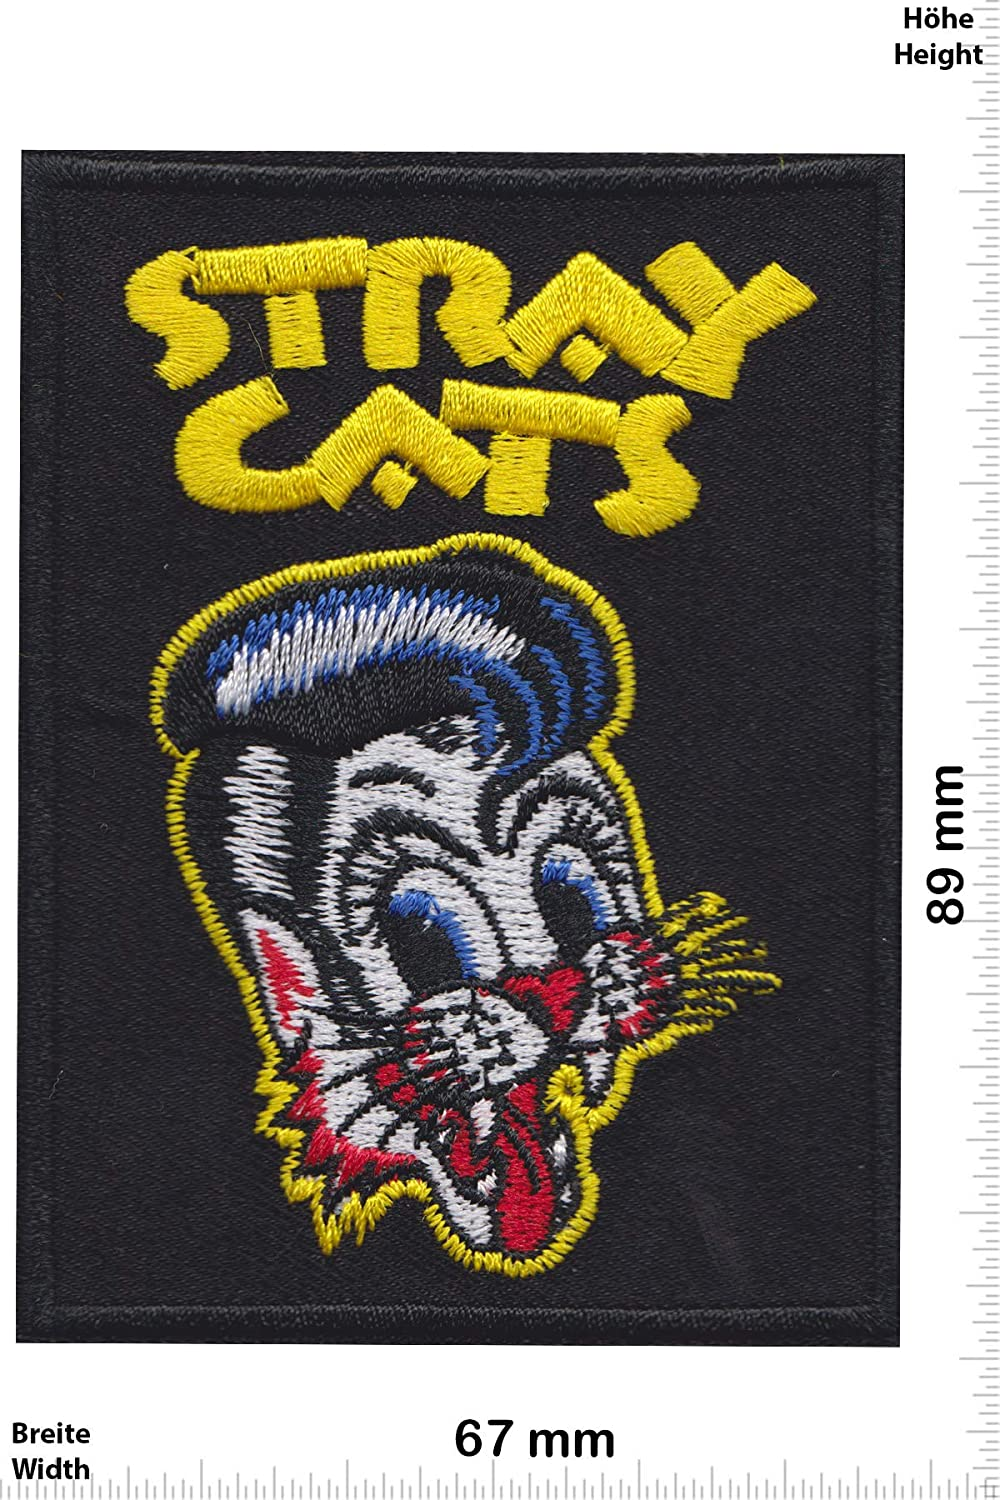 Patch - Stray Cats - Rockabilly Rebels - Black -Oldschool -Stray Cats - Iron on Applique Embroidery Écusson brodé Costume Cadeau- Give